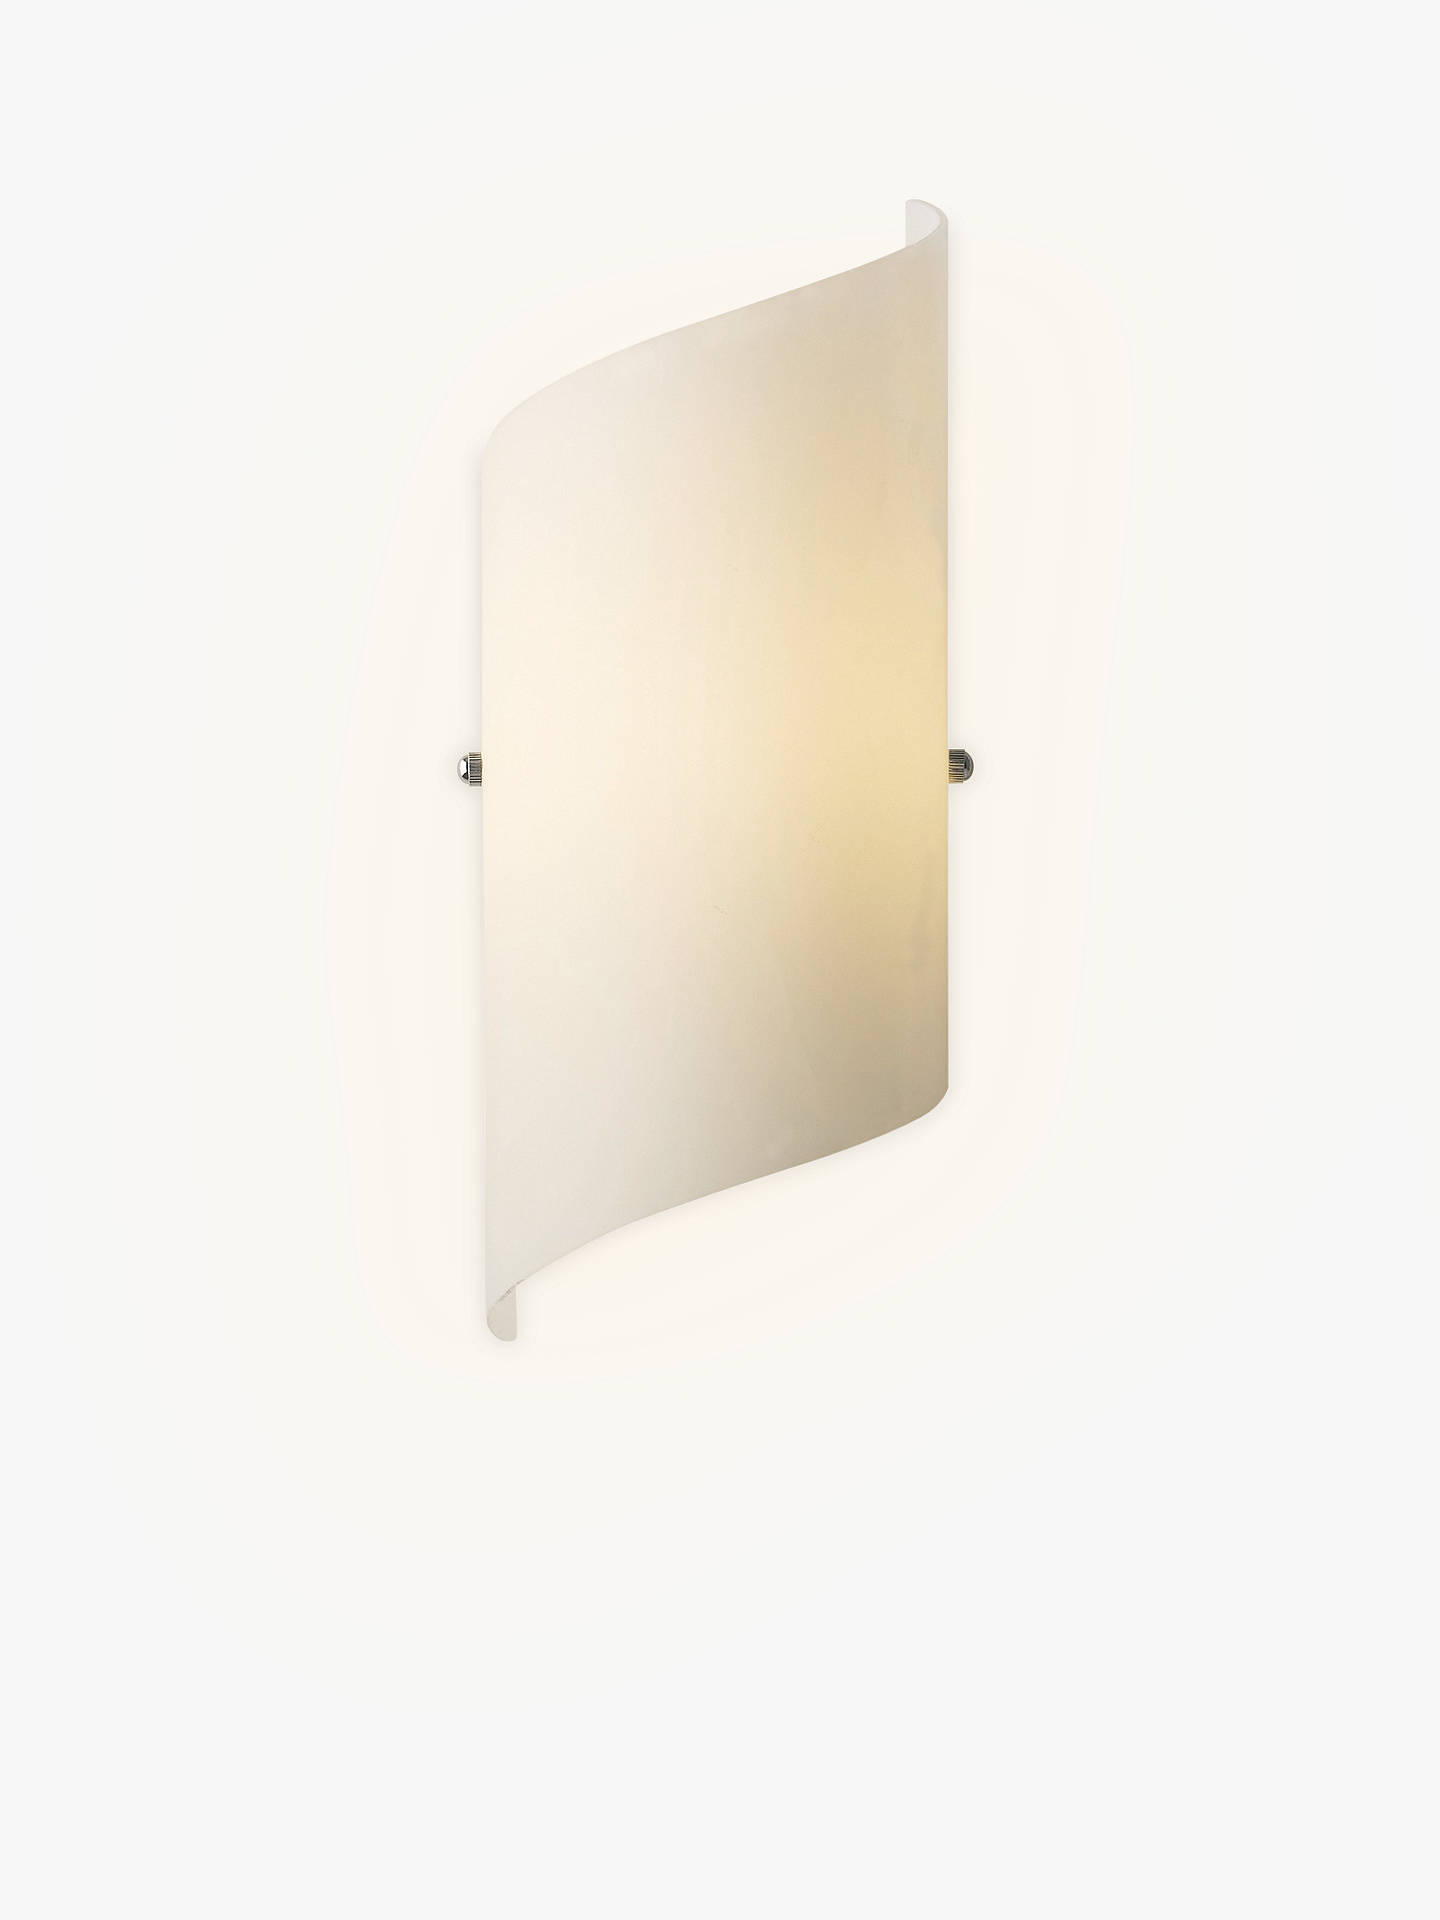 BuyJohn Lewis & Partners Scroll Wall Light Online at johnlewis.com